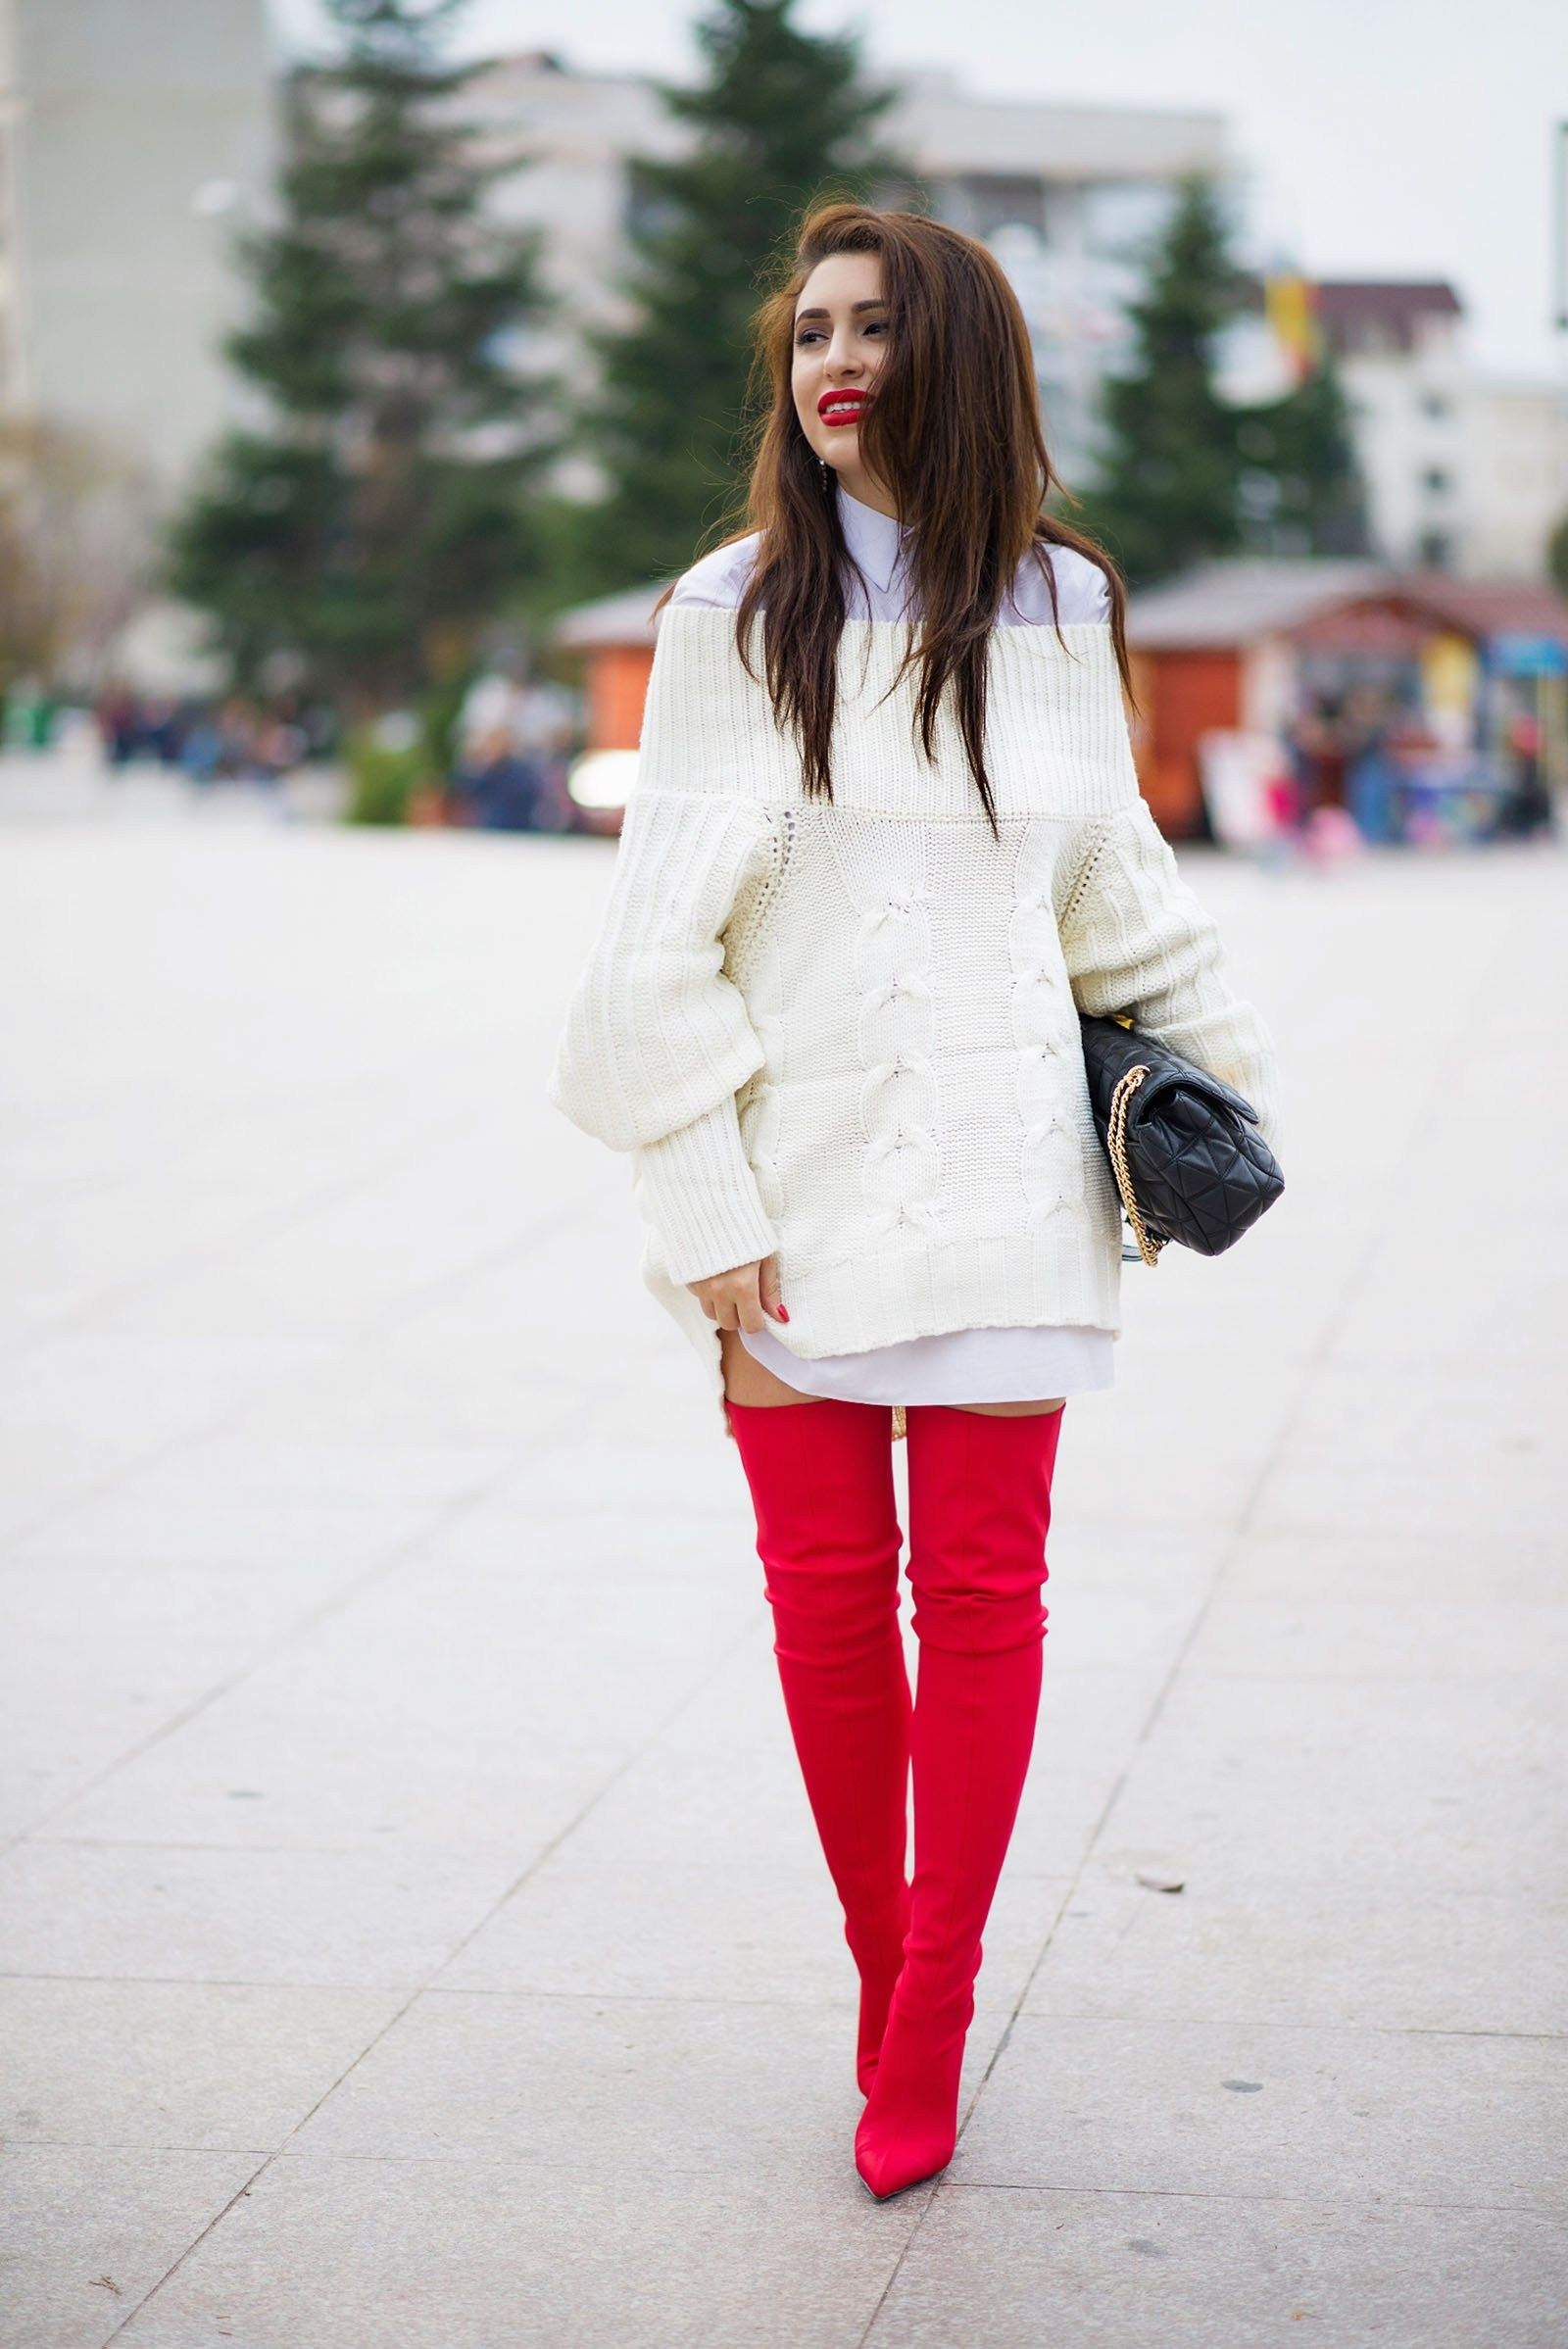 Andreea Manole wearing a pair of red thigh high boots paired with a white  shirt dress